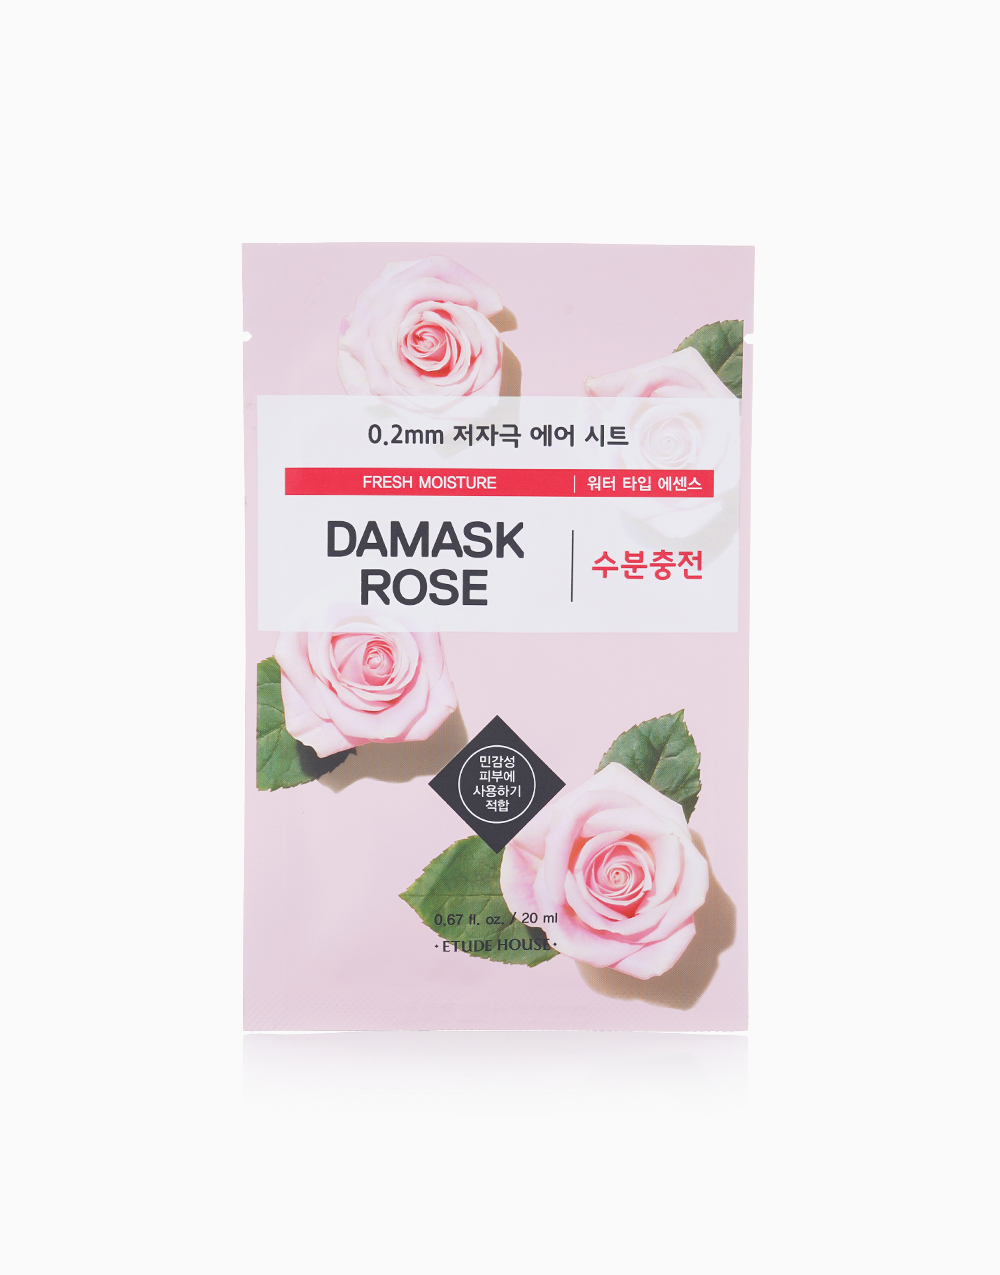 Damask Rose Therapy Air Mask (20ml) by Etude House